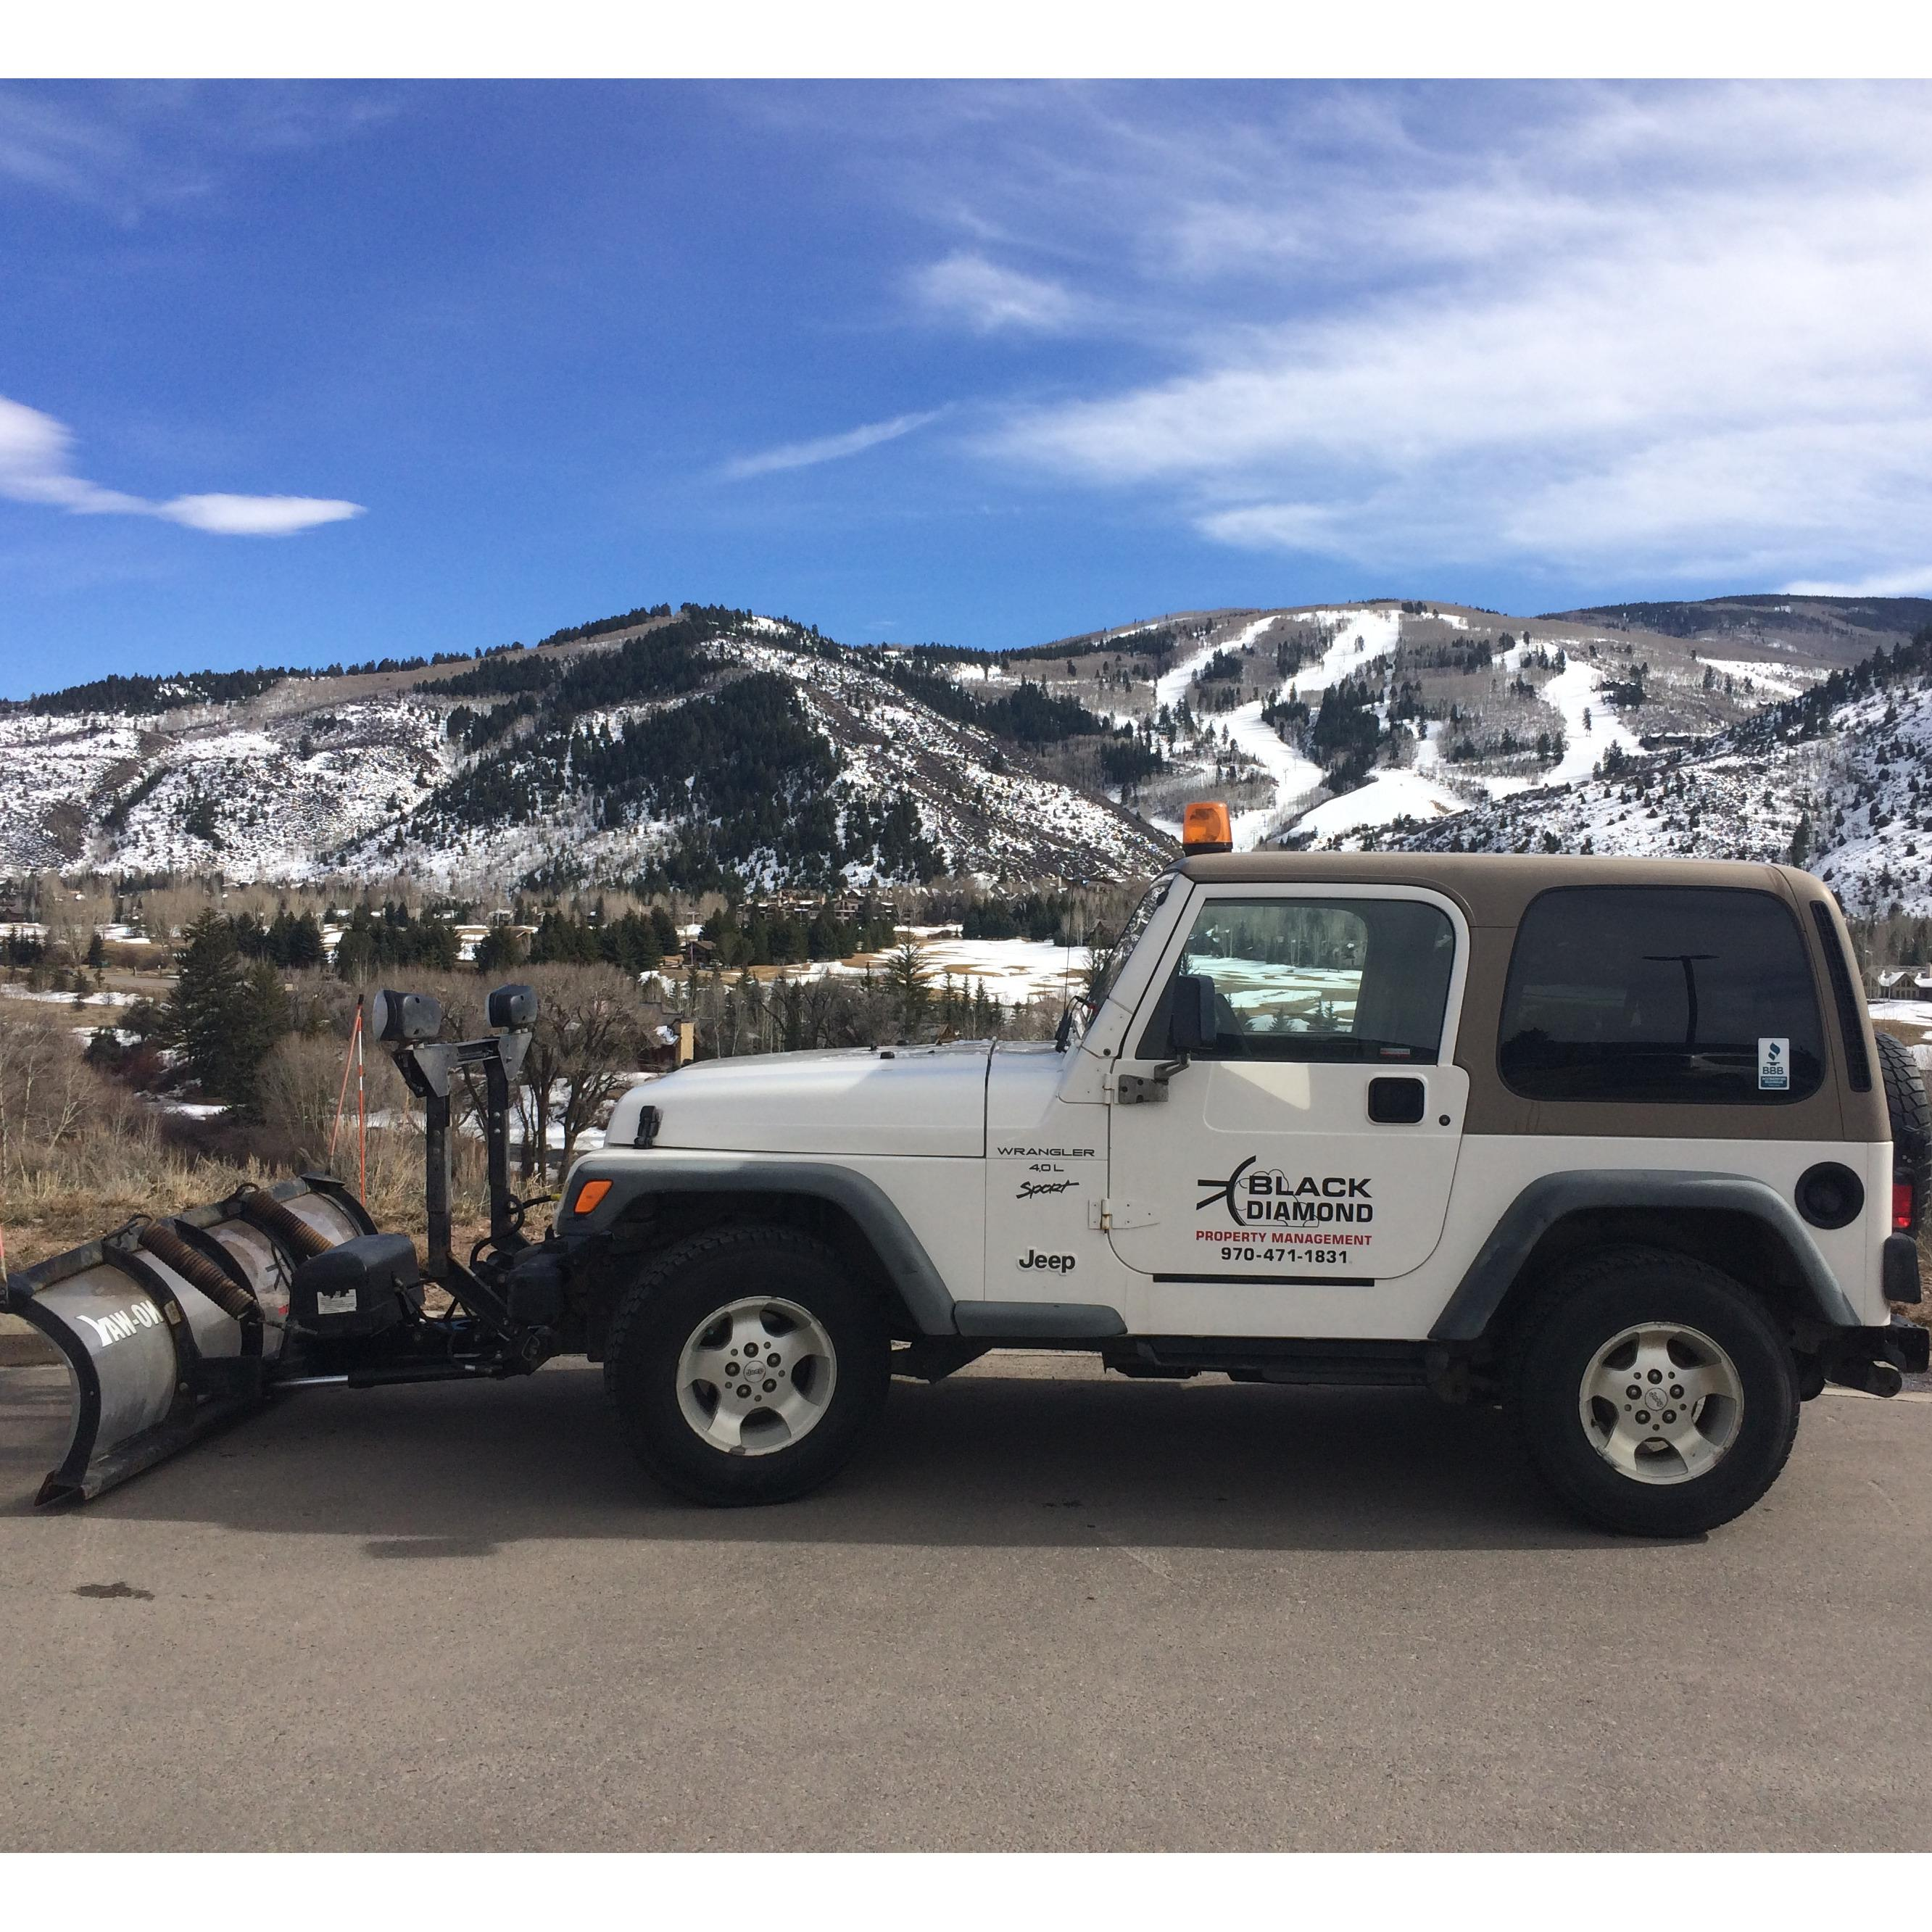 Black Diamond Property Management and Snowplowing - Avon, CO - Snow Removal